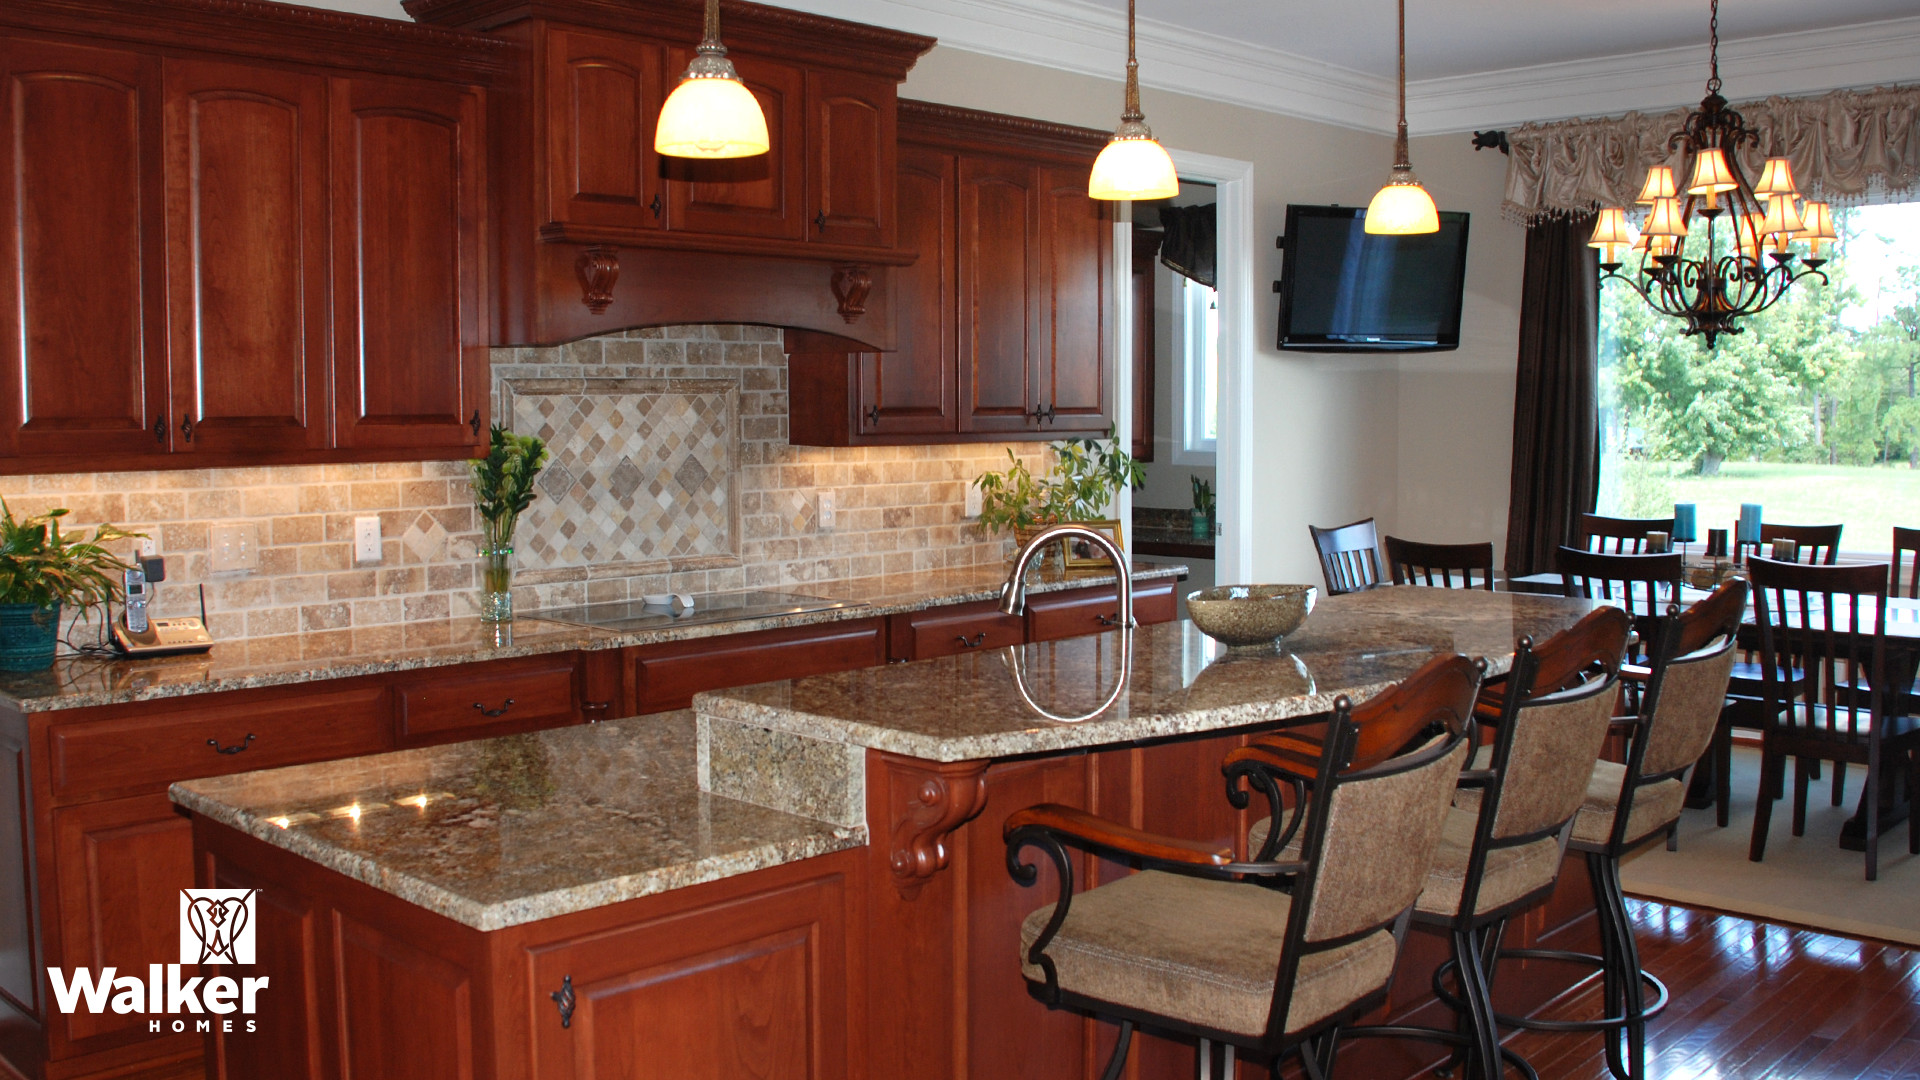 A Kitchen from a custom home design by Walker Homes in Glen Allen, Virginia